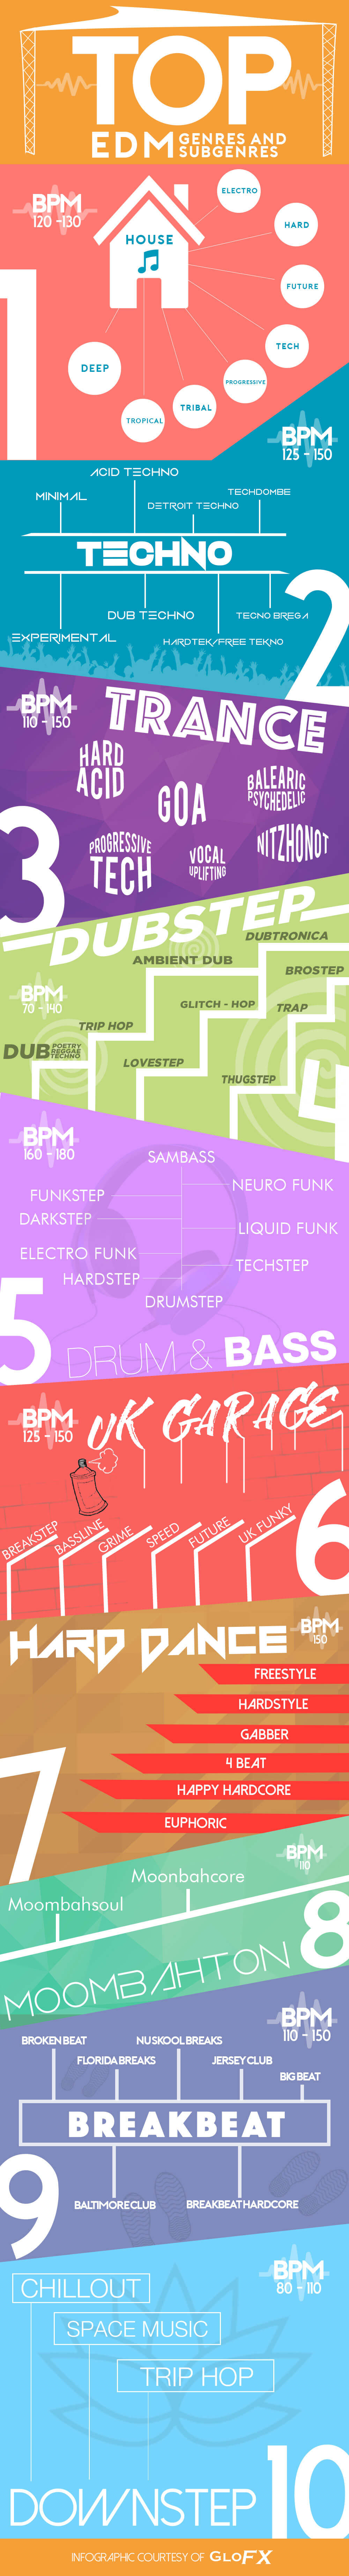 Infographic-TOP-EDM-Genres